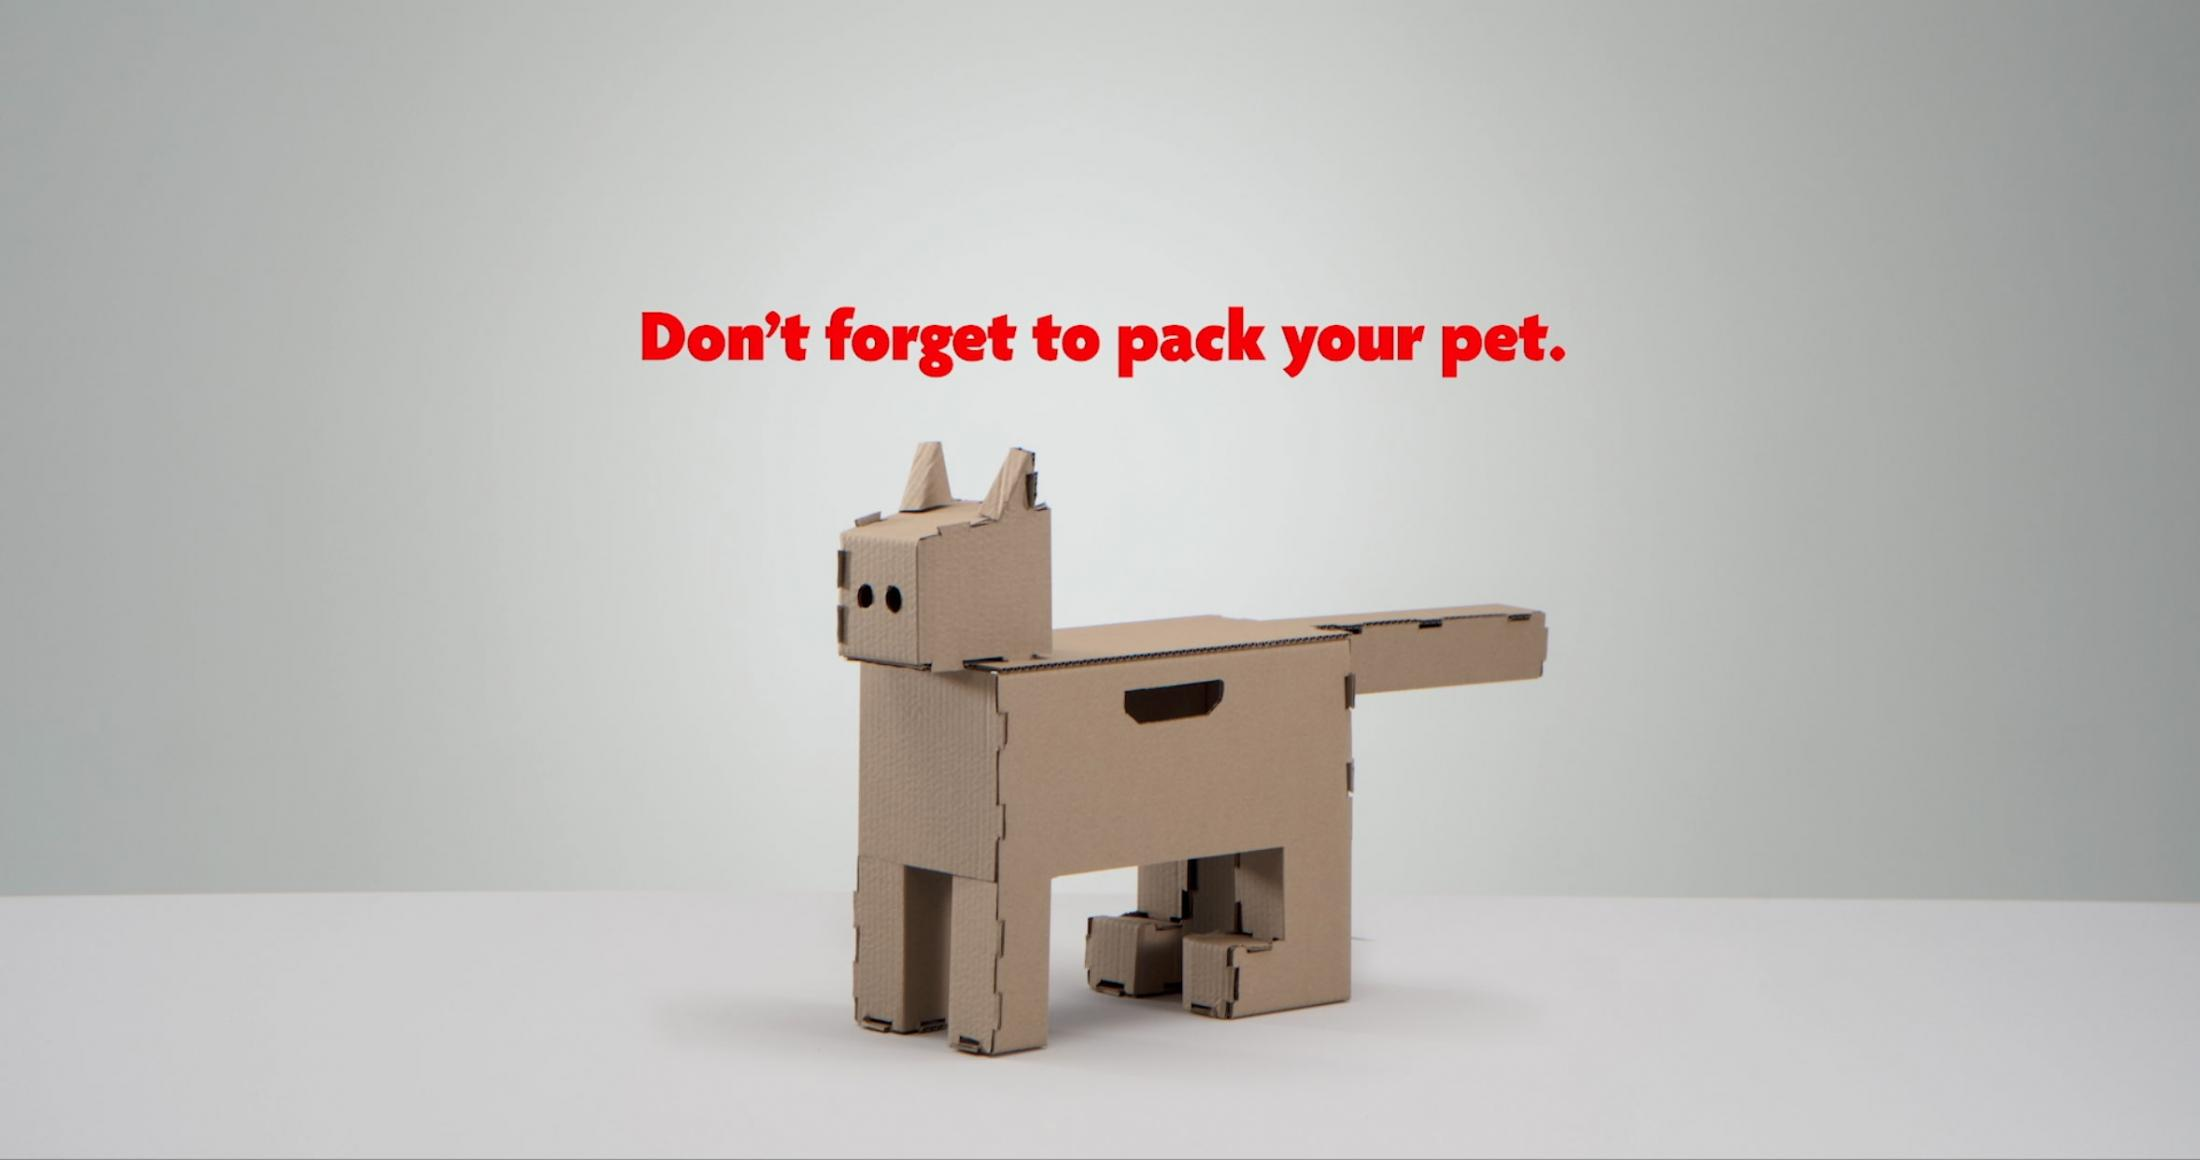 Home Hardware Direct Ad - Pet Packaging